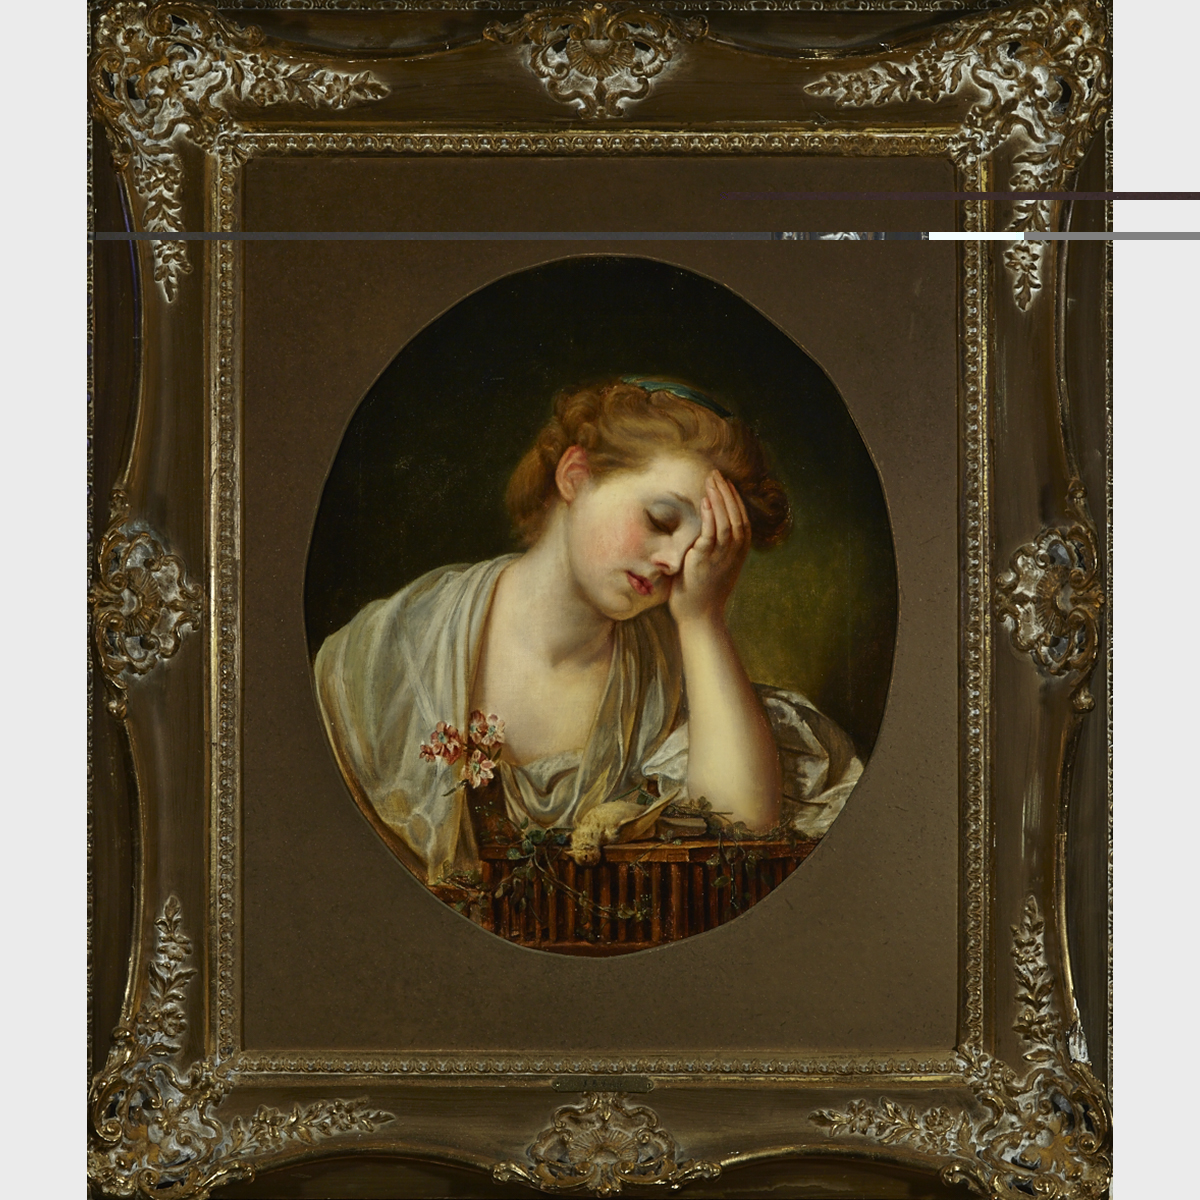 After Jean-Baptiste Greuze (1725-1805)